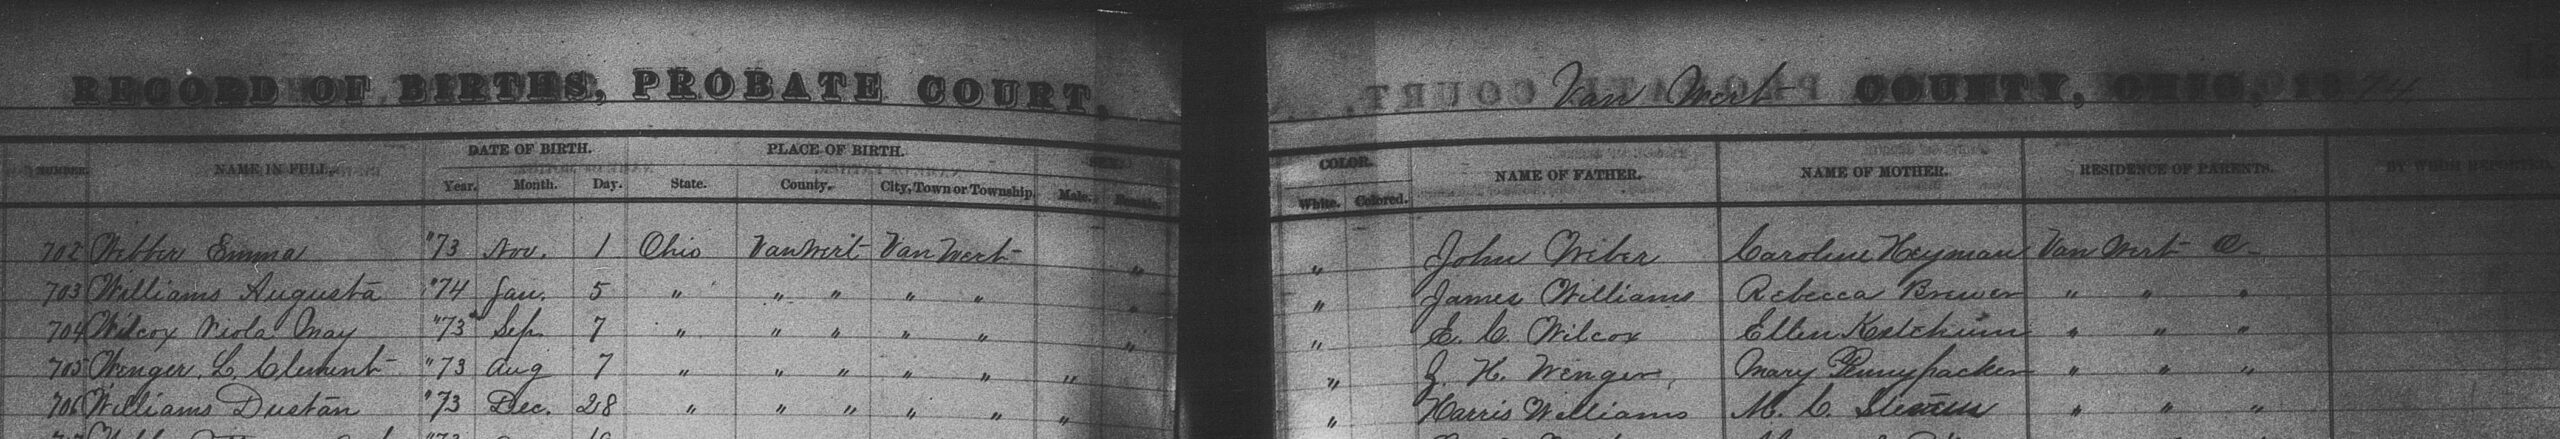 Dustan Williams' Ohio birth record